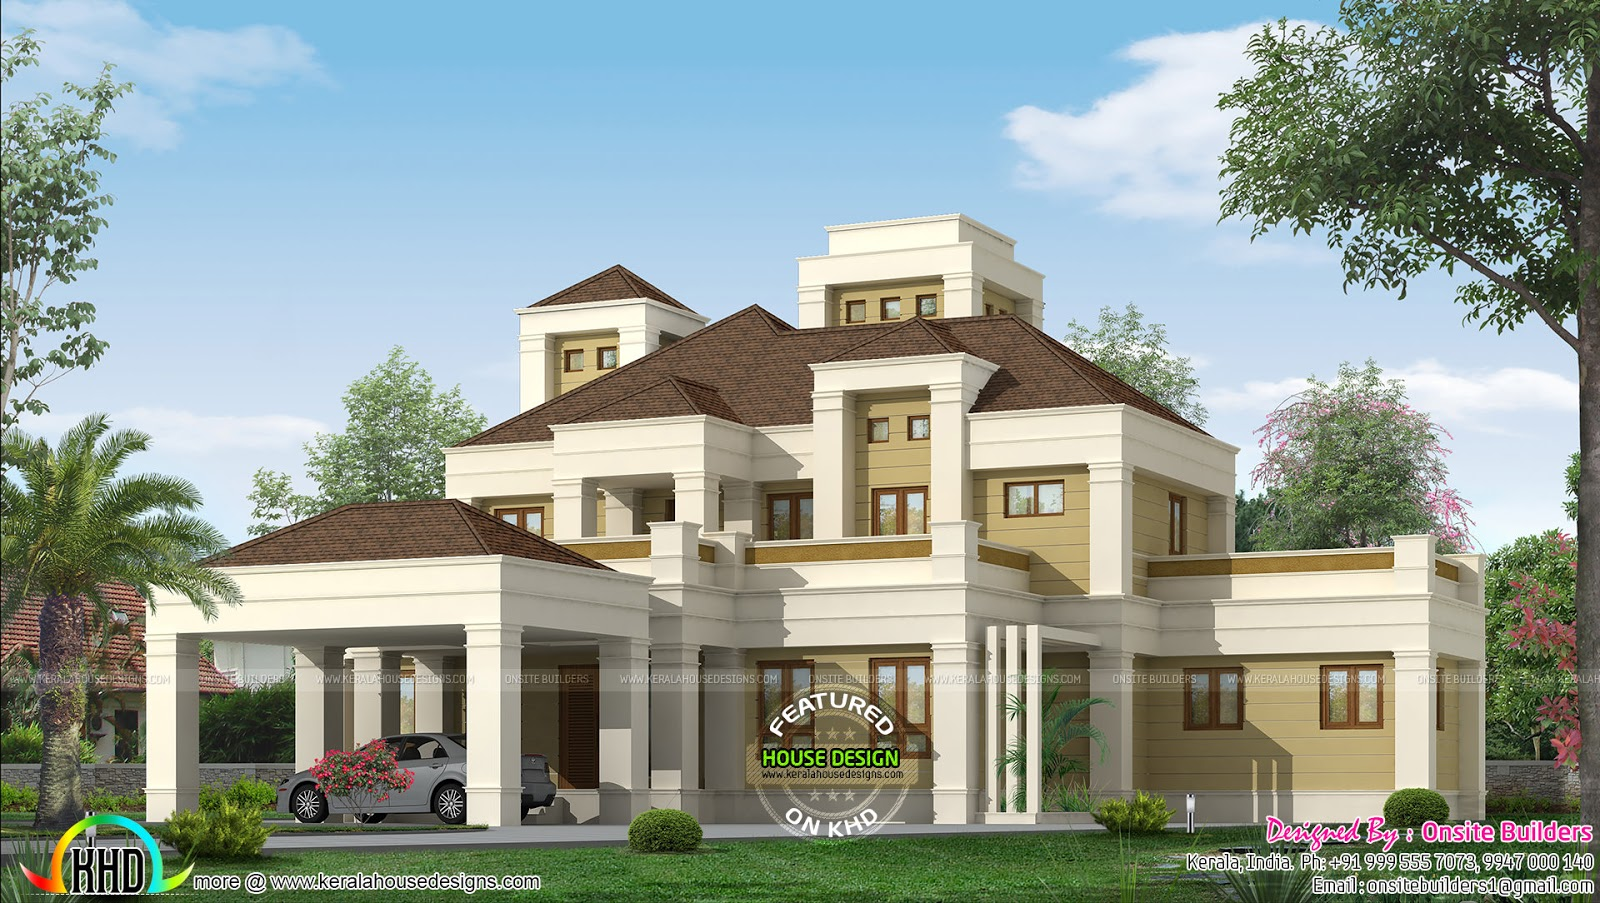 Elegant colonial home plan kerala home design and floor for Colonial style home design in kerala